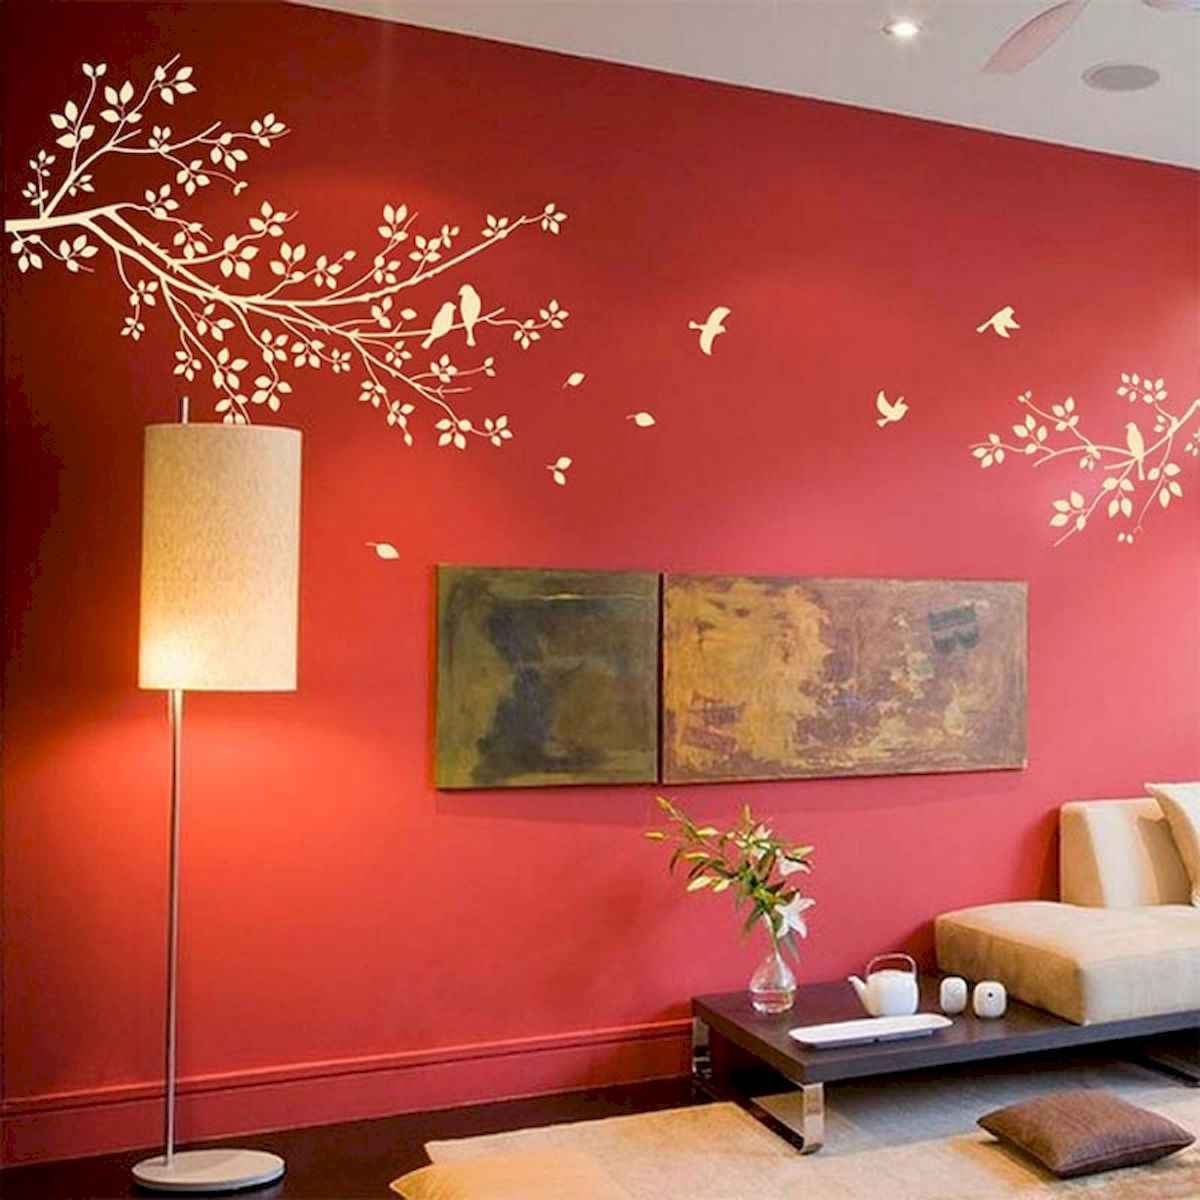 40 Awesome Wall Painting Ideas For Home (7)